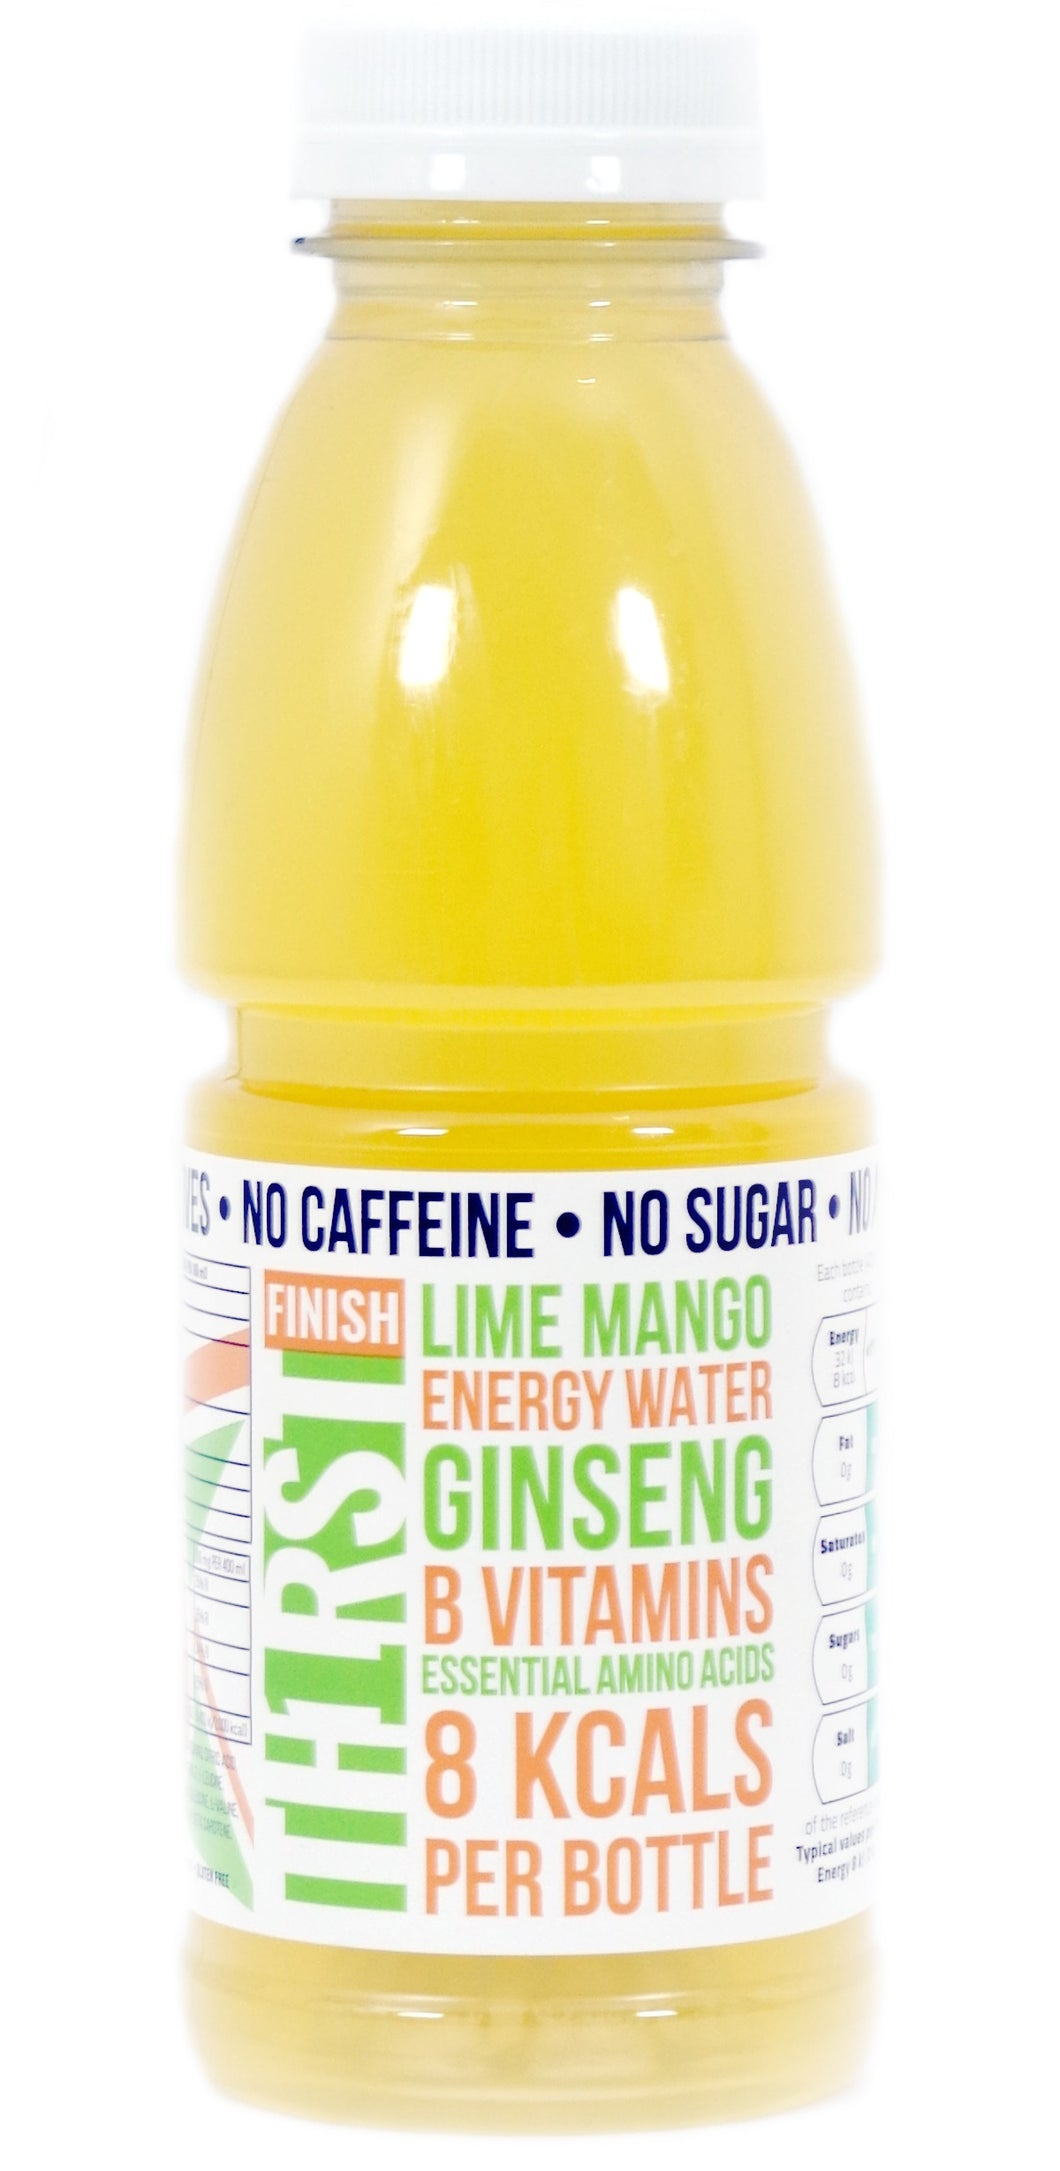 2 x TH1RST LIME MANGO ENERGY WATER WITH GINSENG, AMINO ACIDS & VITAMINS (TASTER) (400ml)